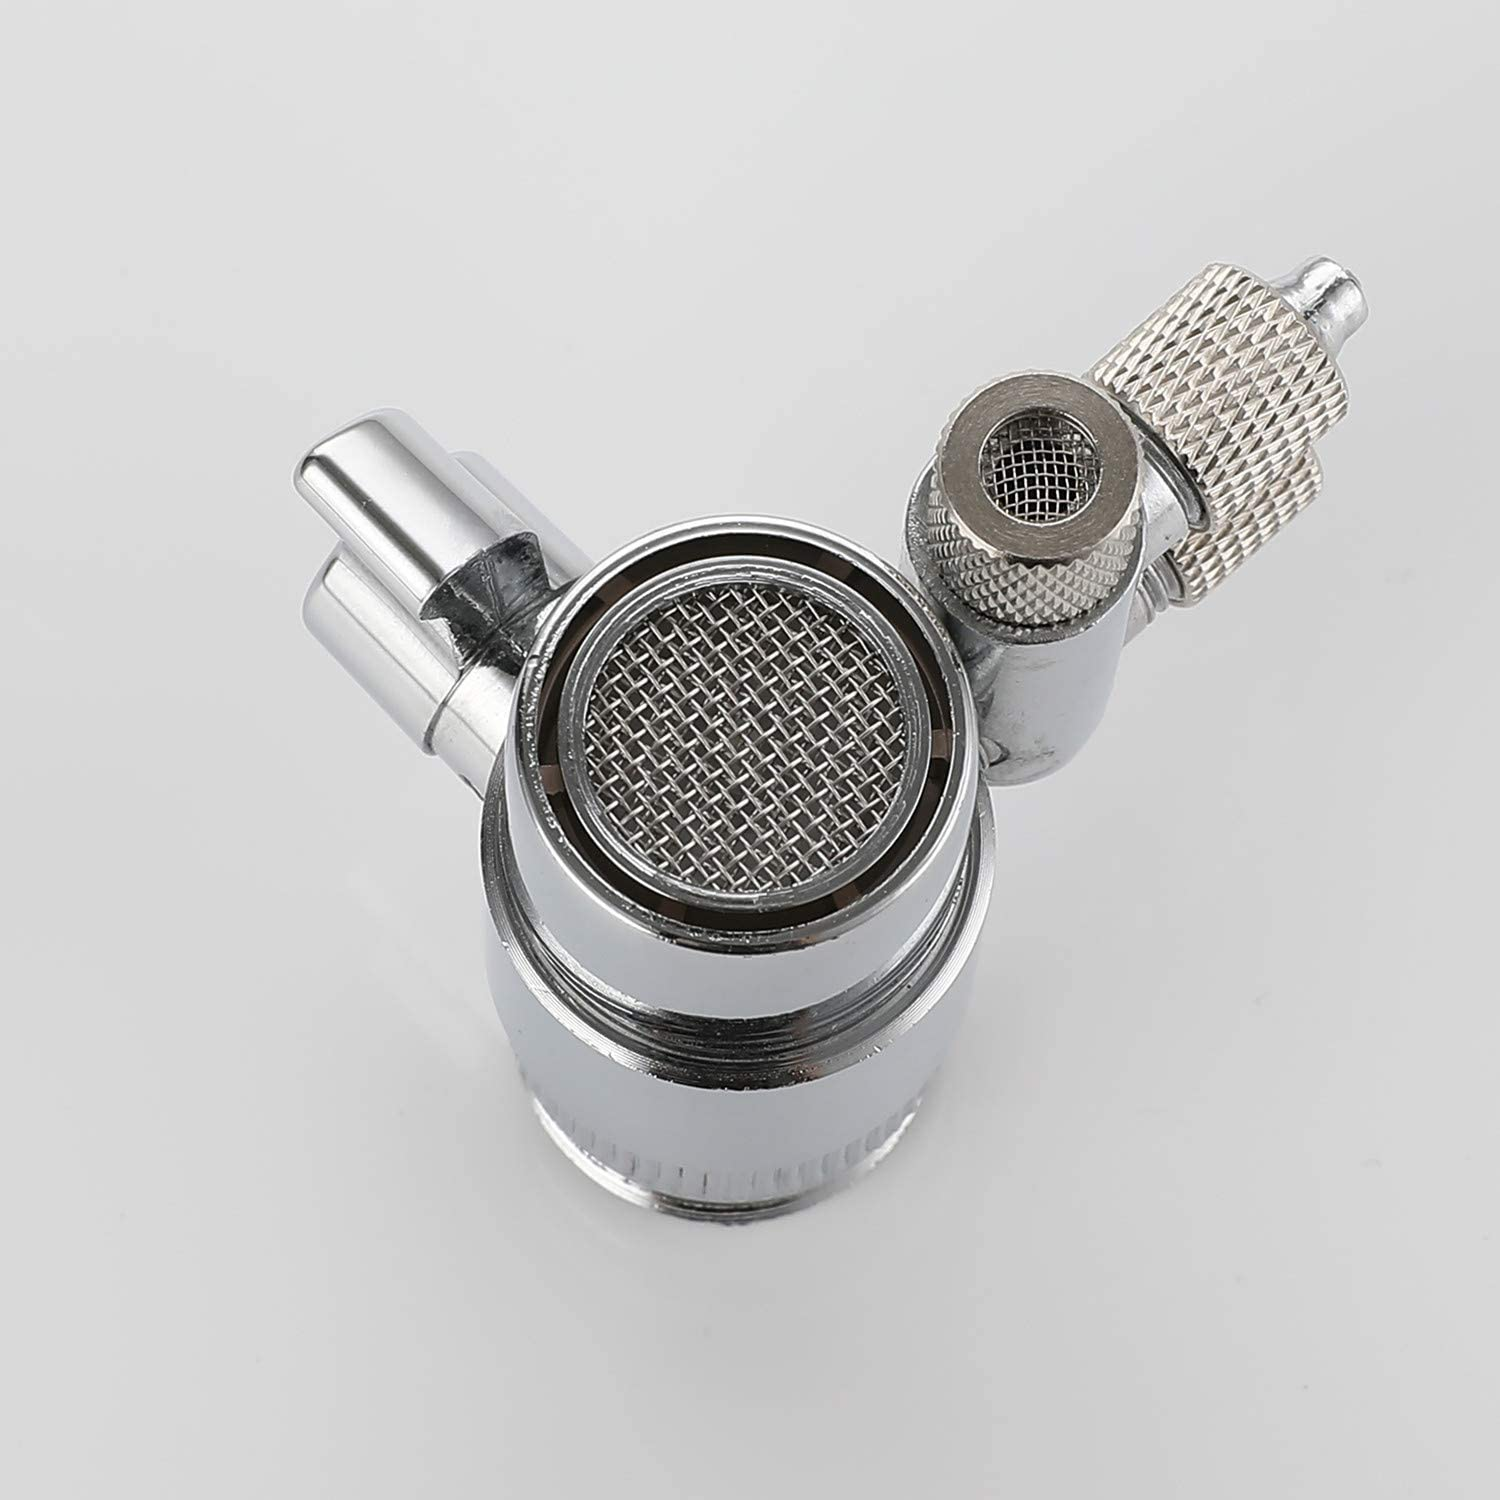 Faucet Connector for Water Diversion ROLYA Two Way Faucet Diverter Valve with Aerator M22 Female Thread Faucet Adapter for 1//4 RO Tubing Faucet Tap for Countertop Water Filter